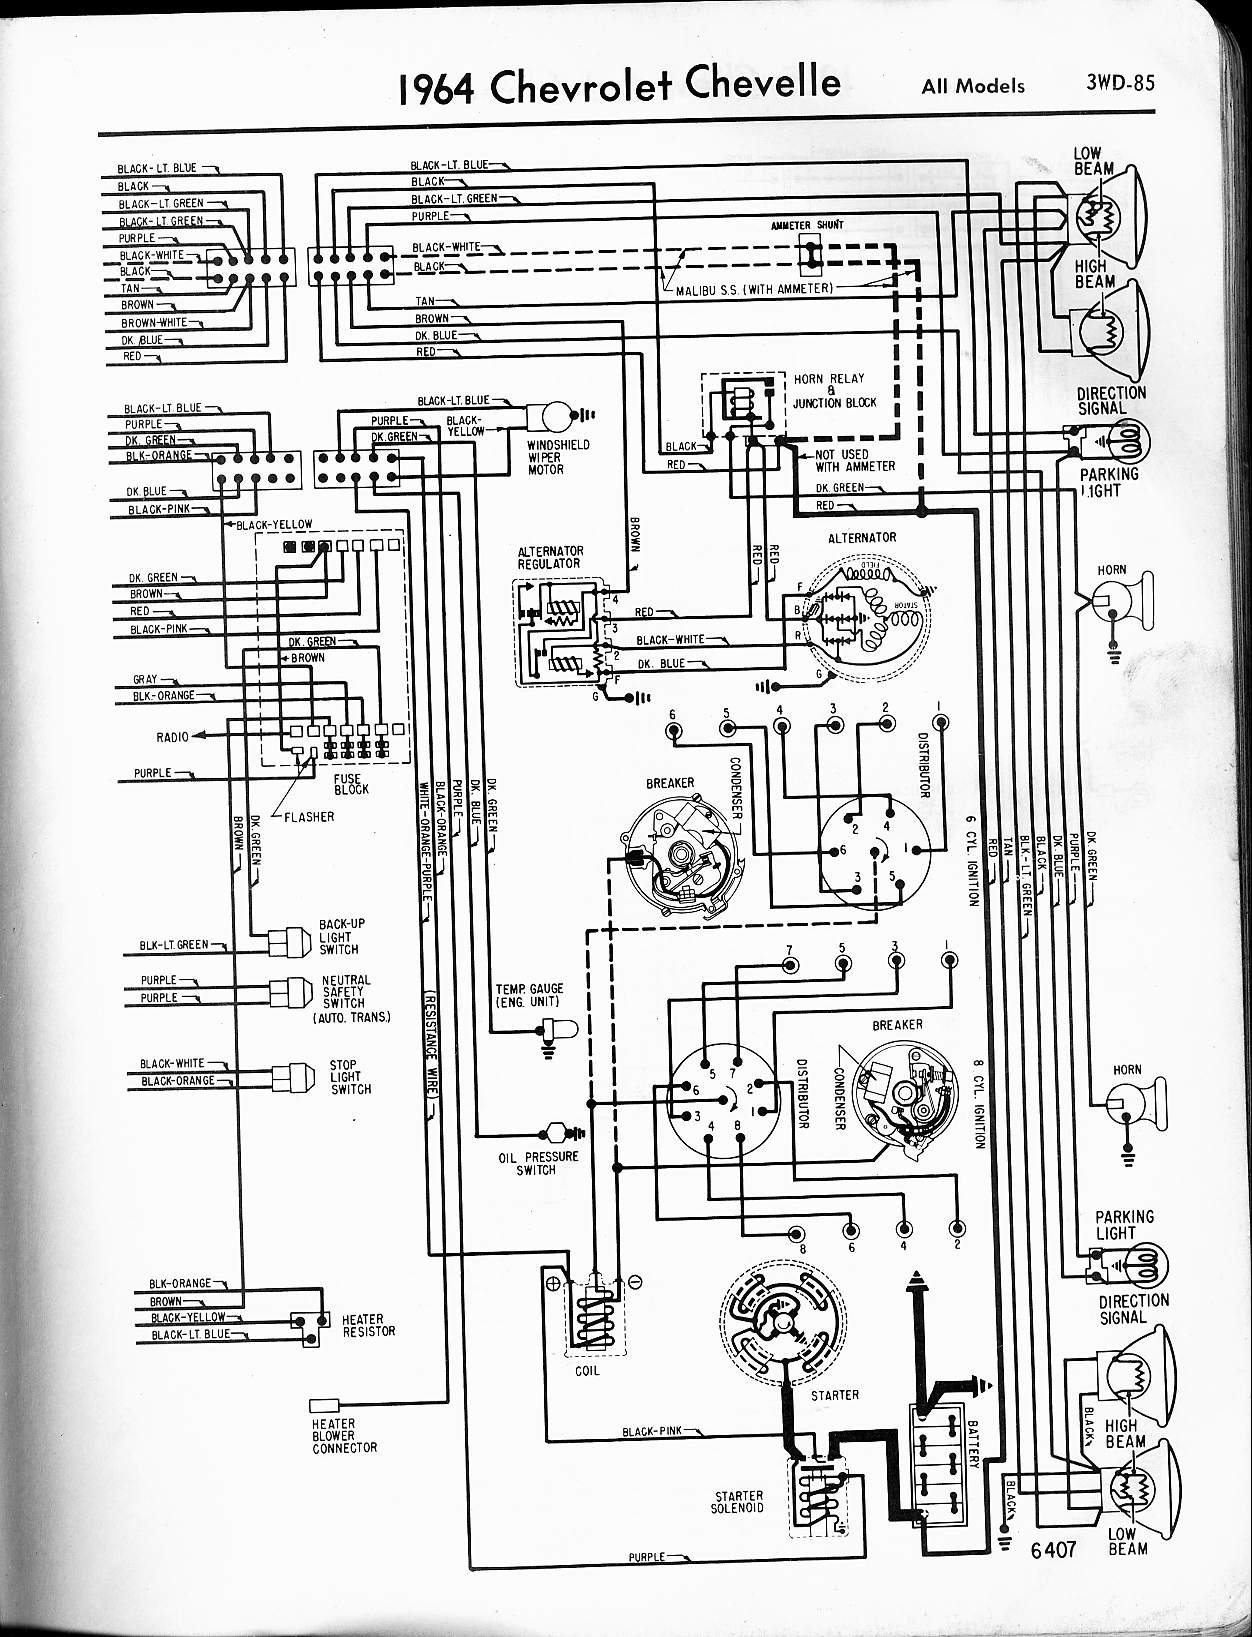 1968 Impala Wiring Diagram Lights Simple Wiring Diagram 1967 GTO Wiring  1966 Impala Wiring Diagram